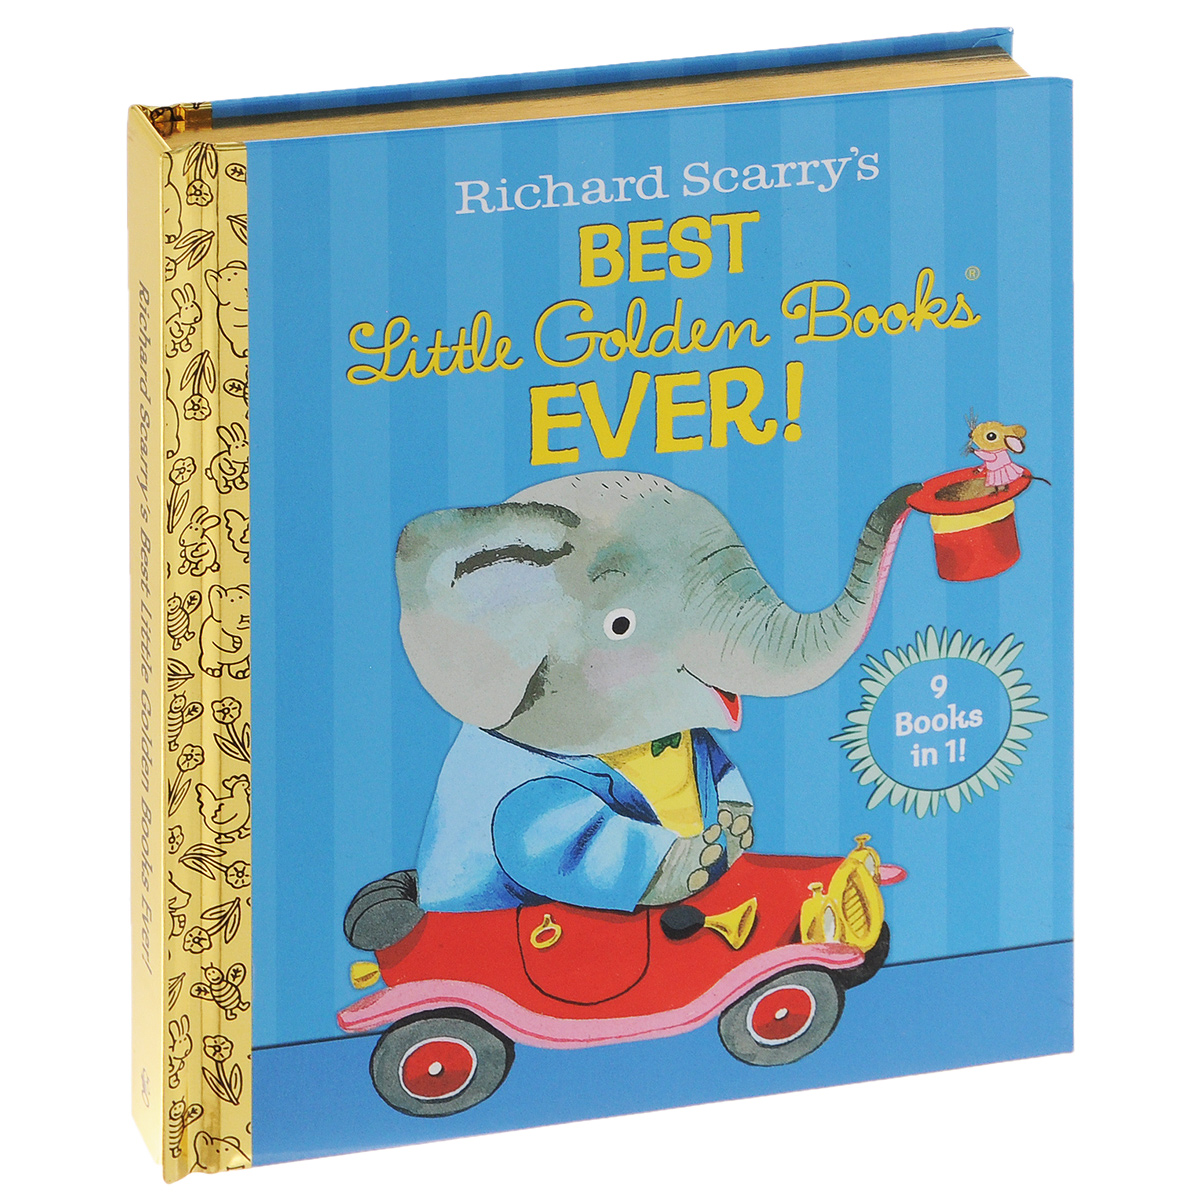 Ever! little bear and other stories